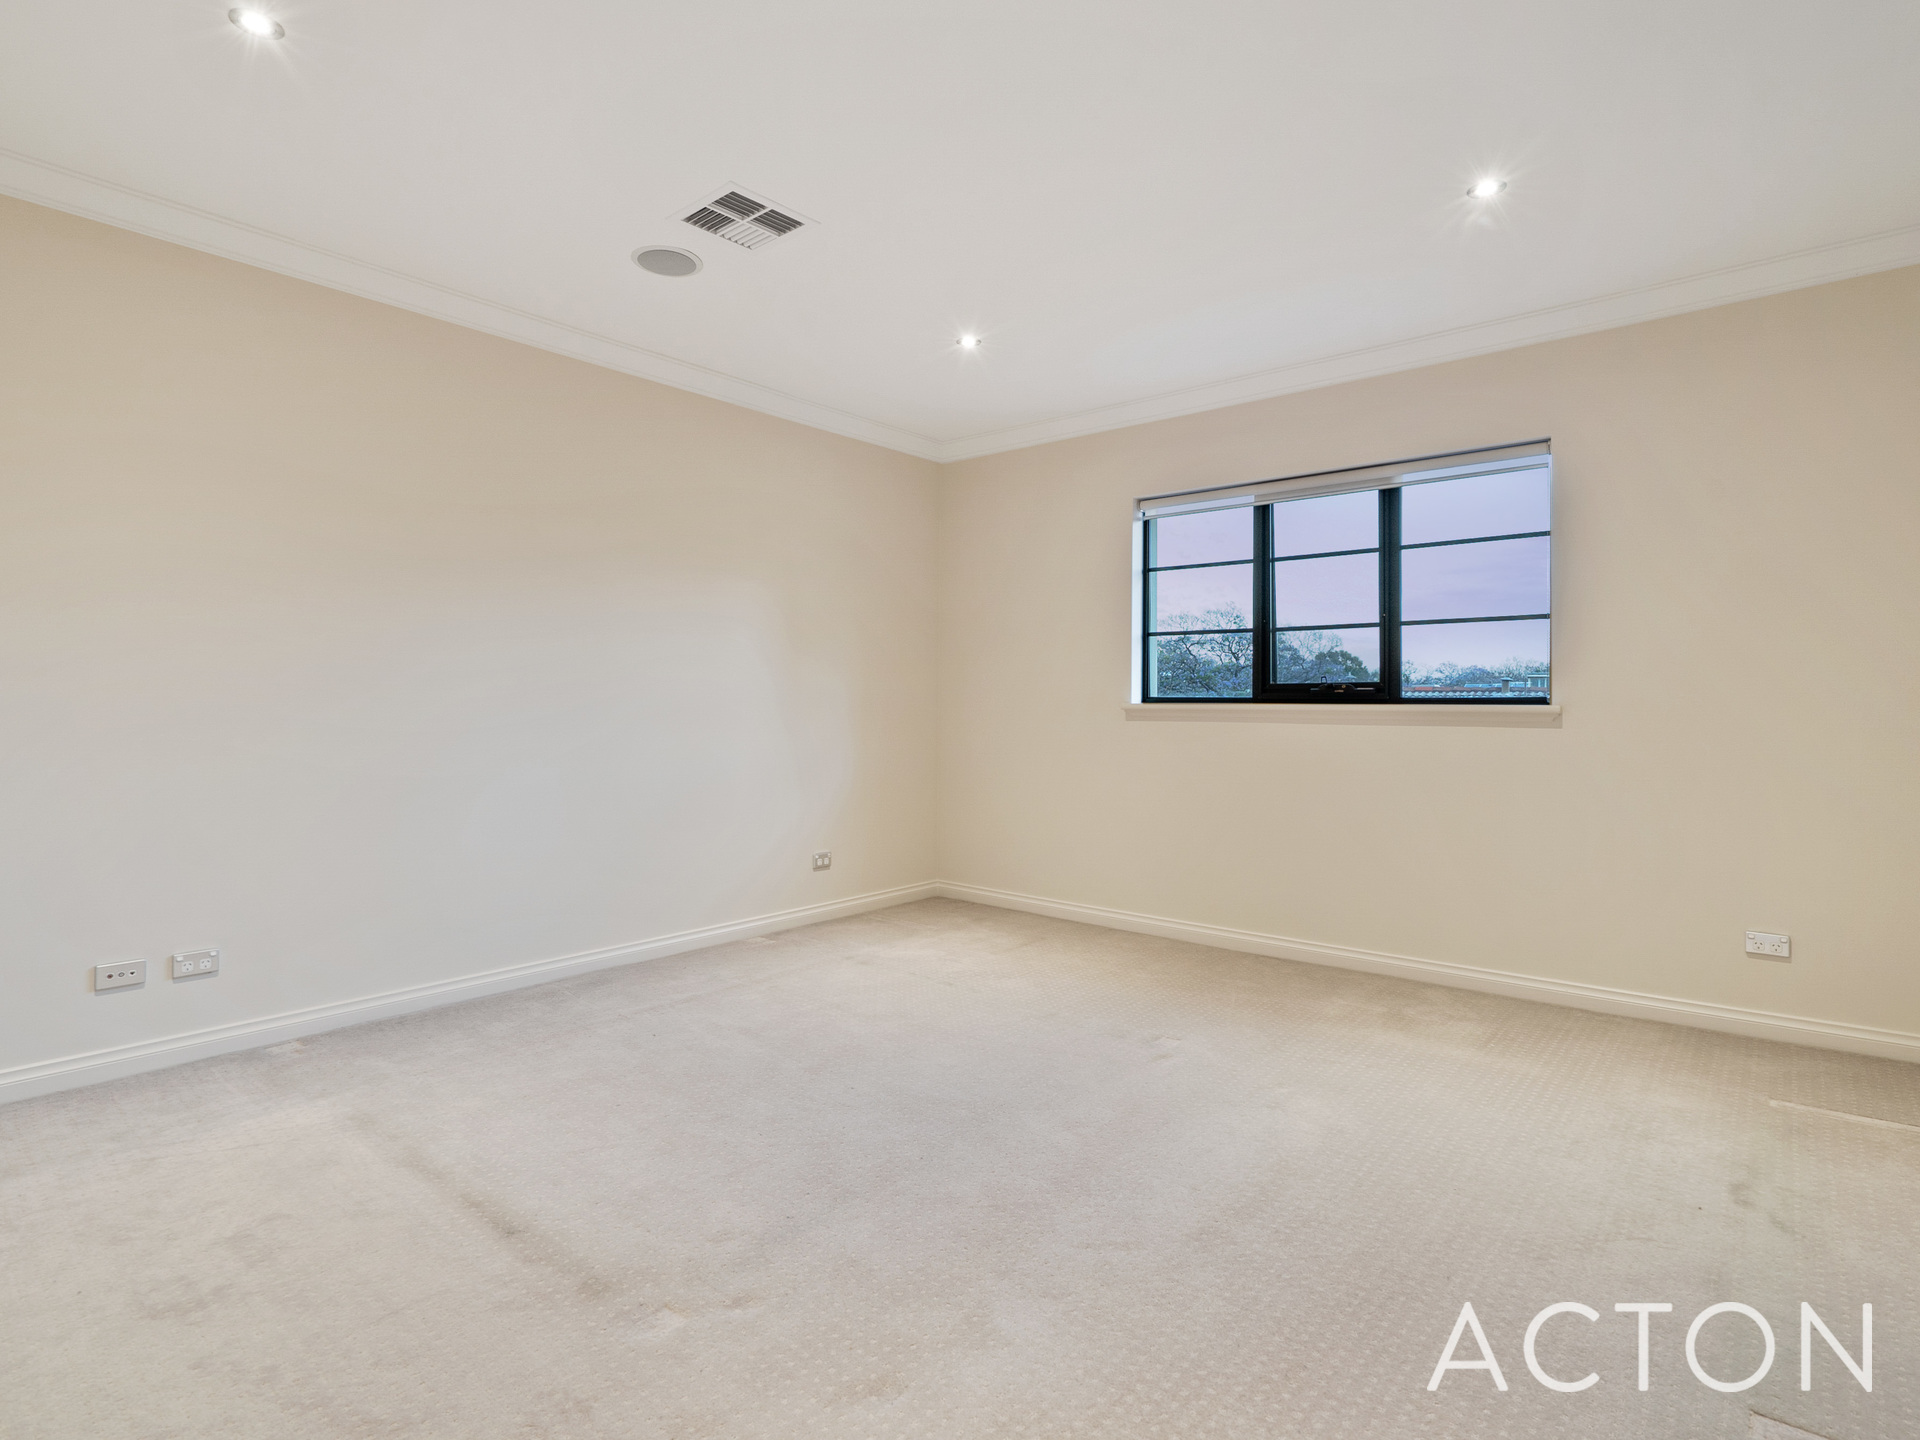 2/29 Strickland Street South Perth - House For Sale - 20159573 - ACTON Projects